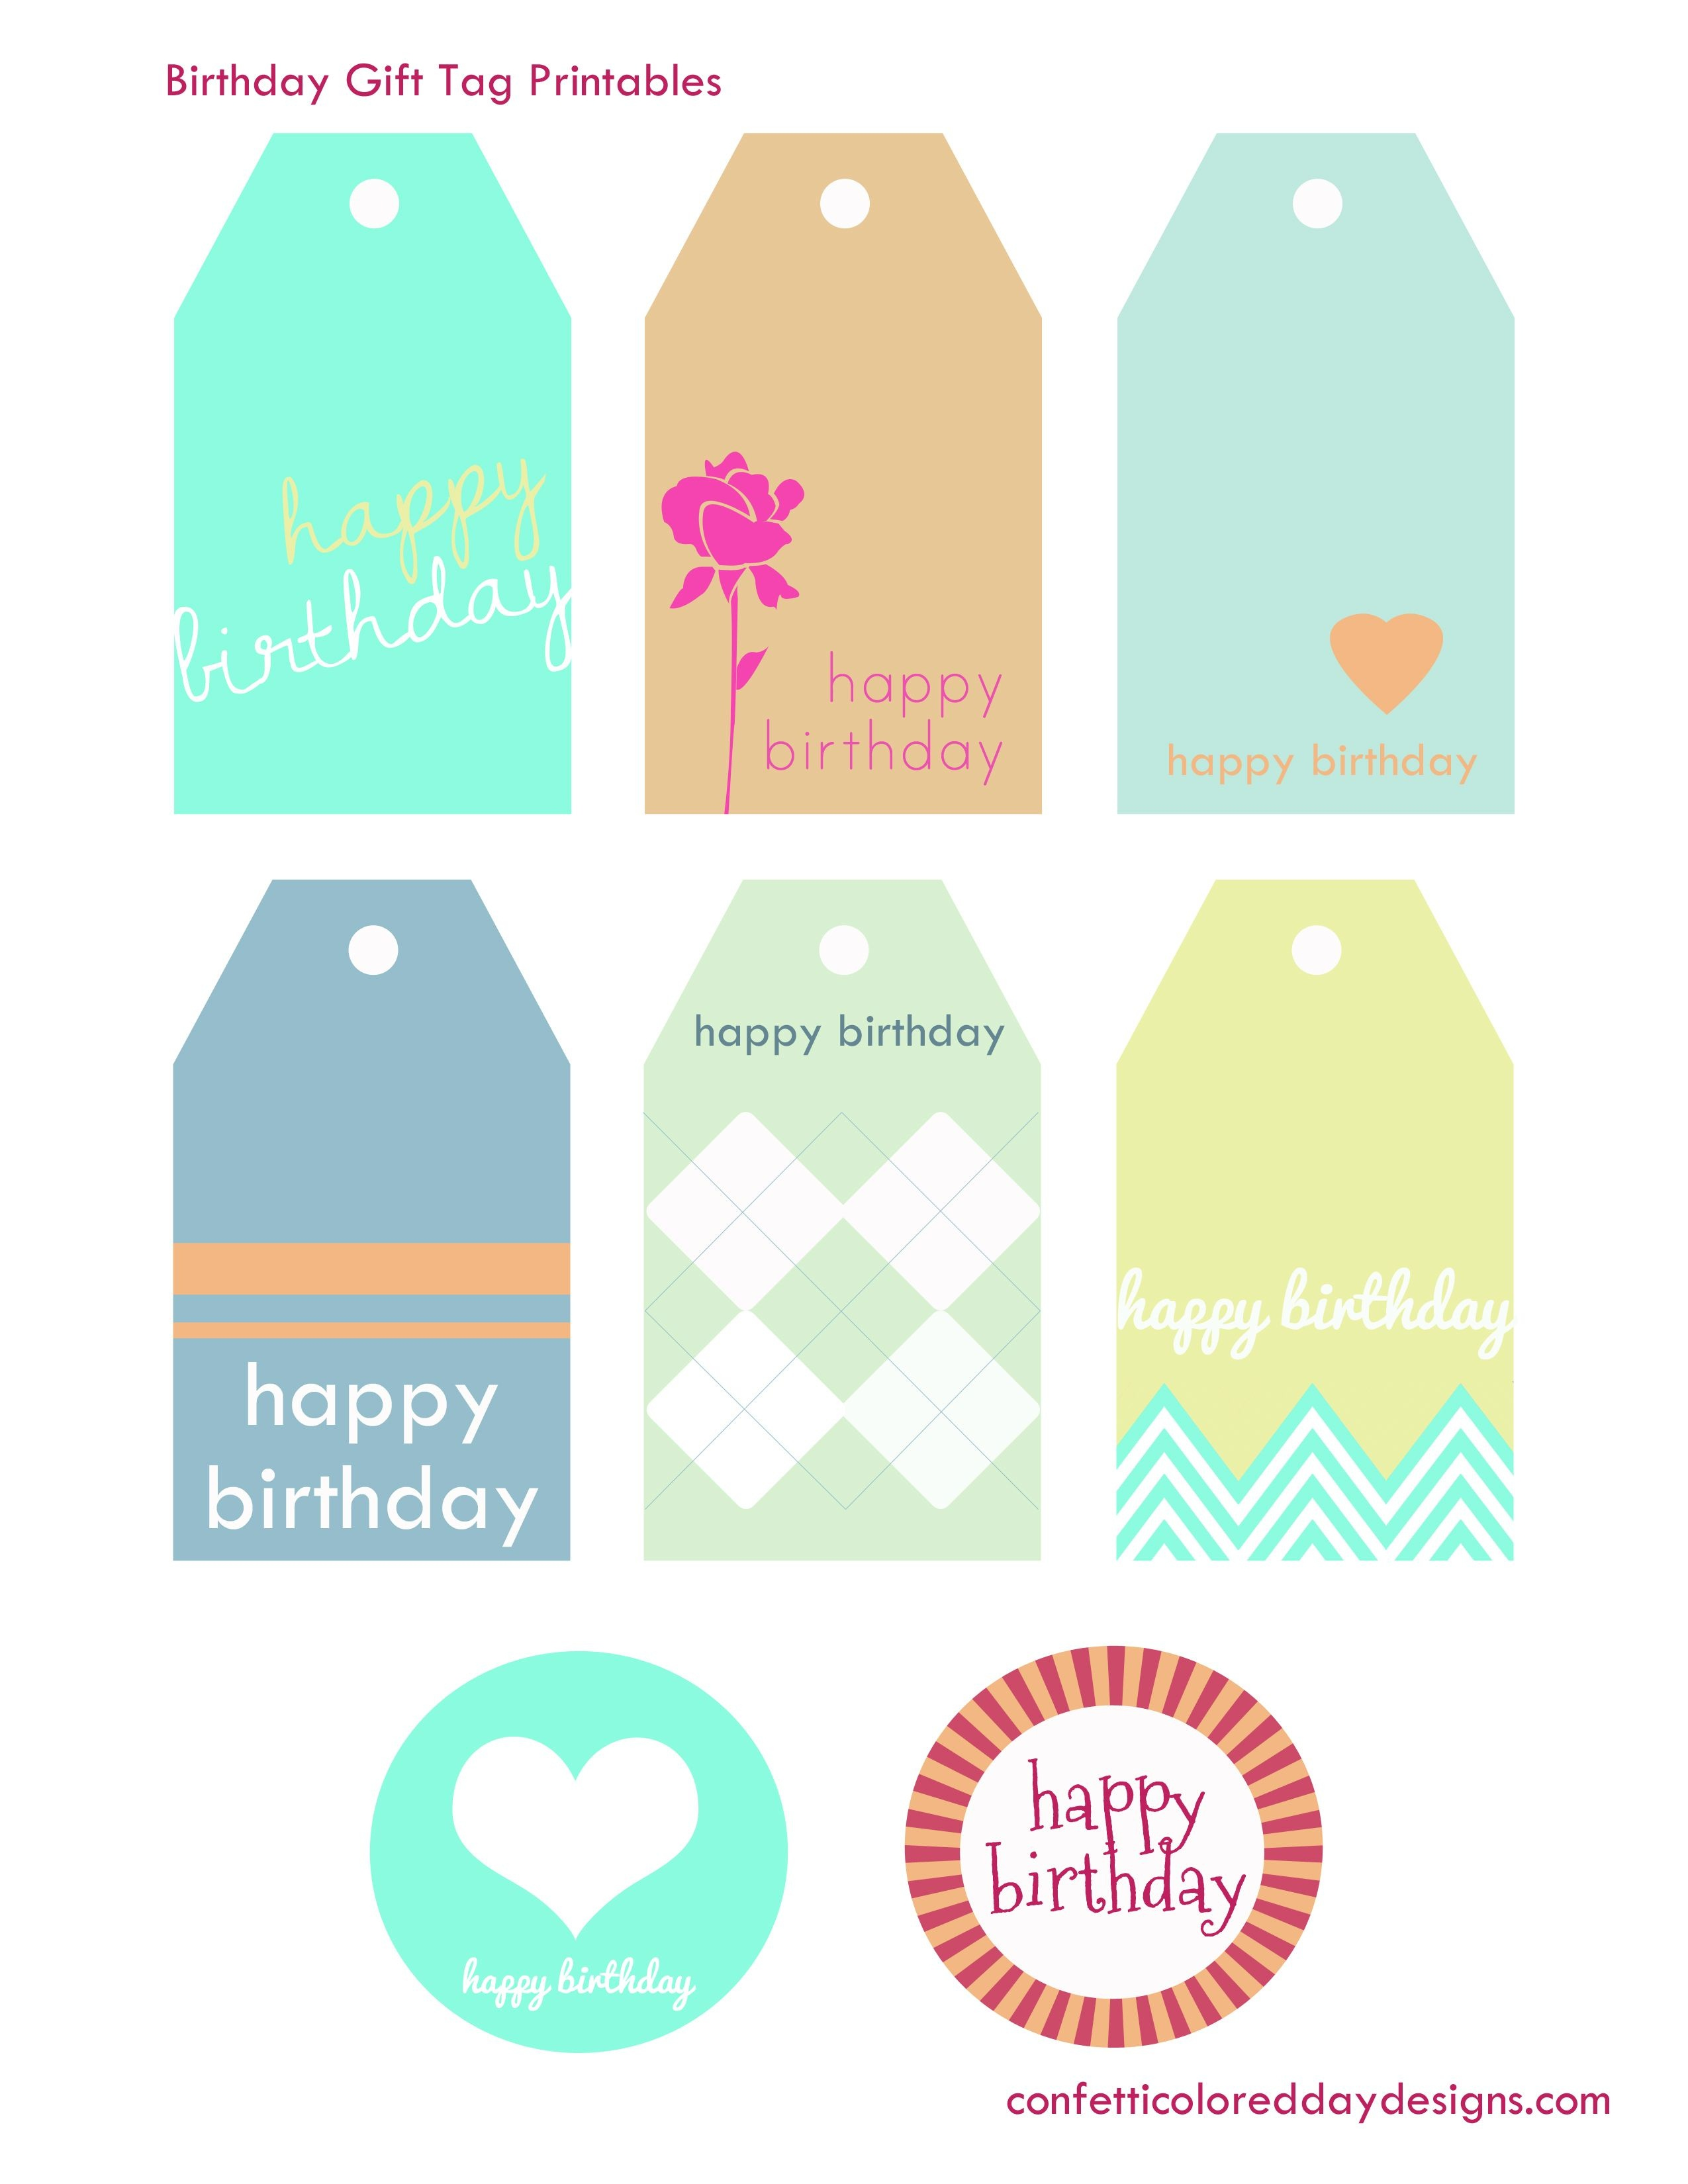 Pinmaheen Khan On Cards, Gifts & Gift Wraps   Birthday Tags - Free Printable Birthday Tags